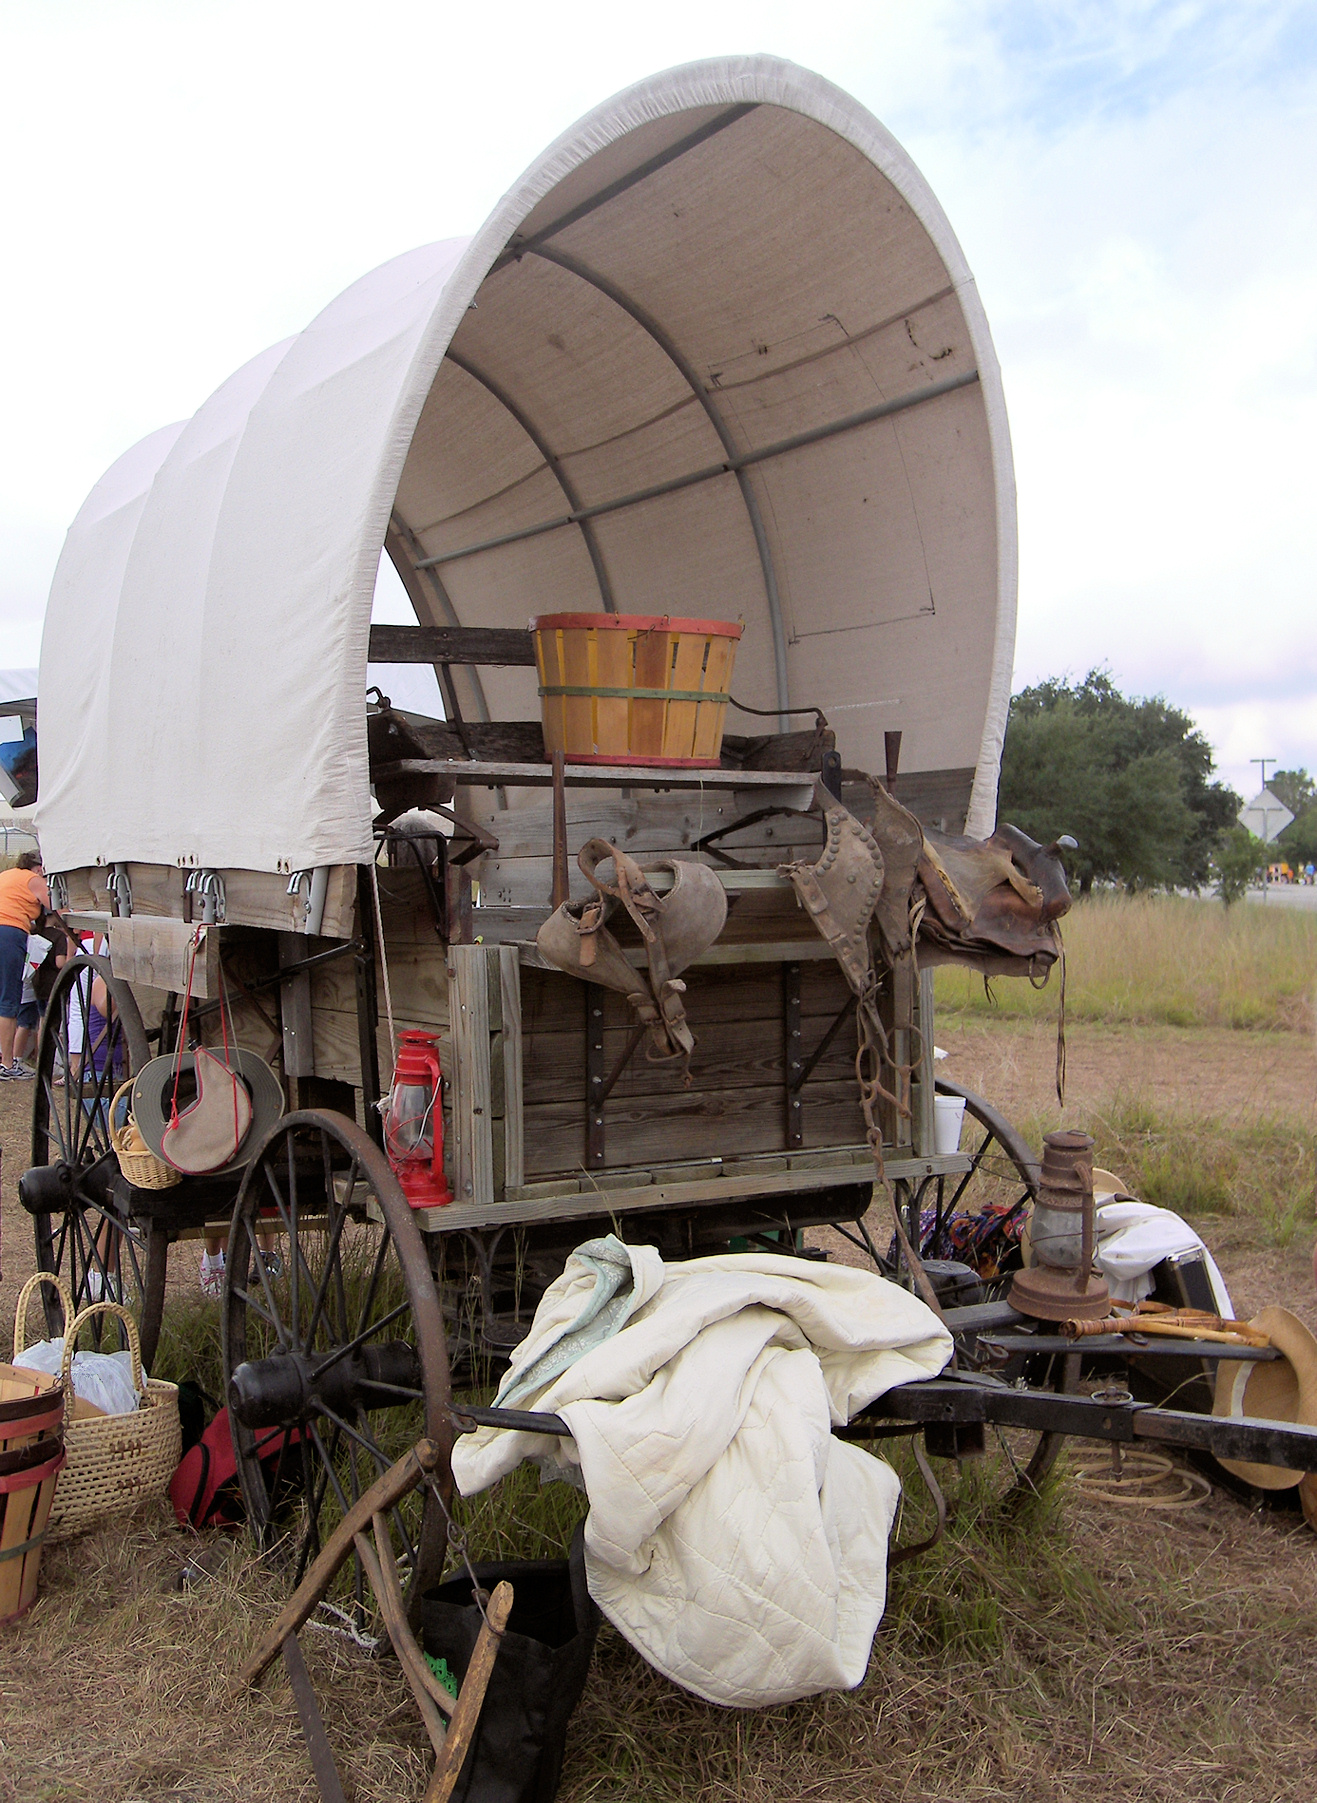 File:Covered wagon.jpg